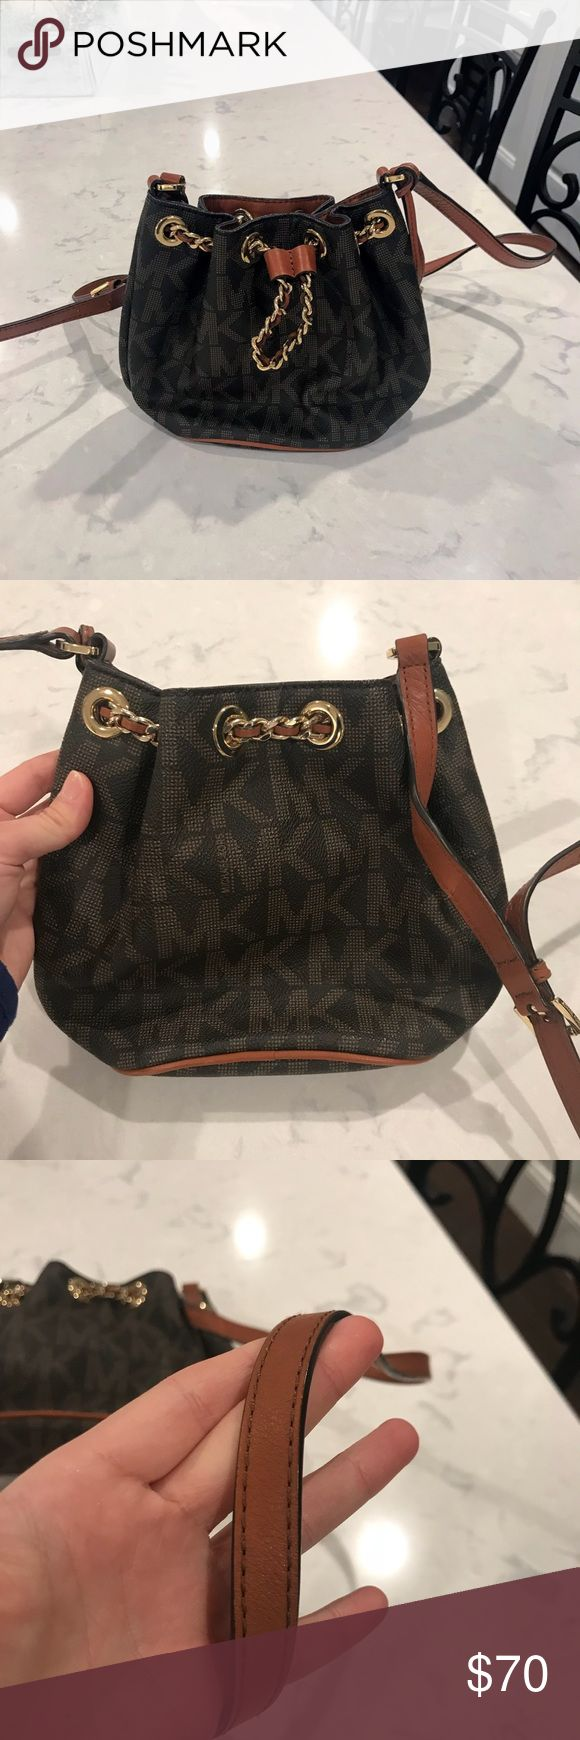 Like new Michael Kors Frankie cross body bag 100% authentic  Like new!! Got a few months ago  9.8/10 the only flaw is a few pen marks inside that you would never even see if you put items inside  Beautiful two tone leather  Perfect for night out or traveling  Strap and hard ware in perfect condition  Only selling because saving up for new bag!!   This is a beaut ladies!! **Offers welcome** KORS Michael Kors Bags Crossbody Bags